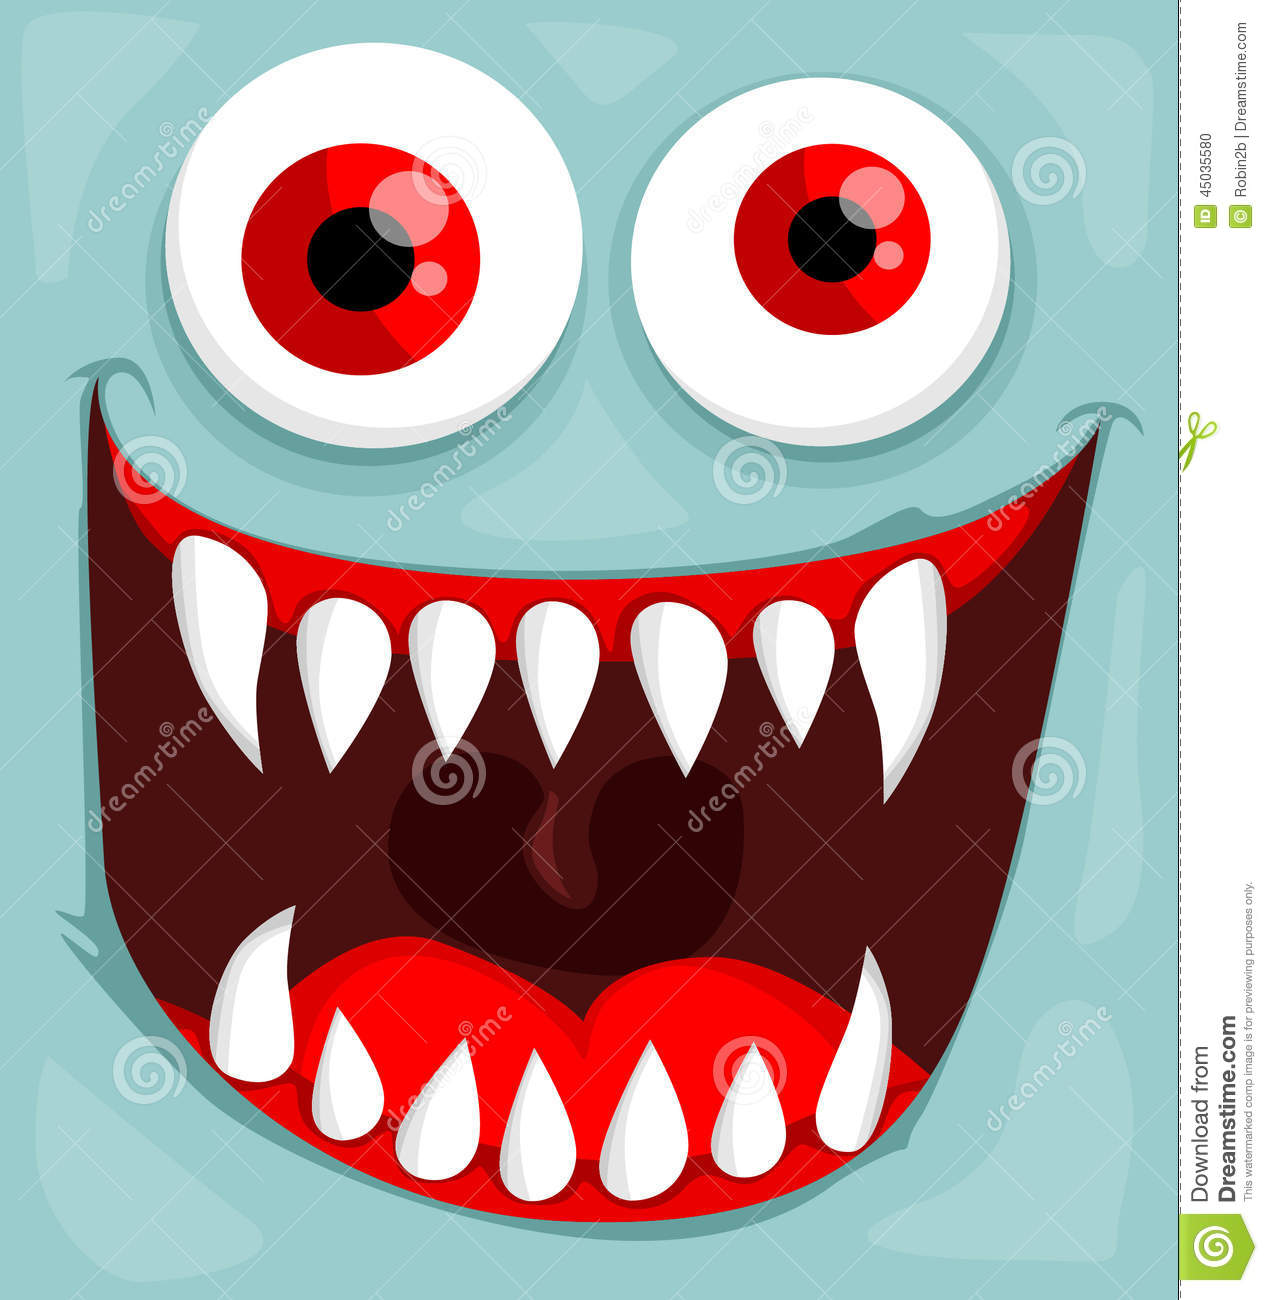 Cute monster face vector illustration background.